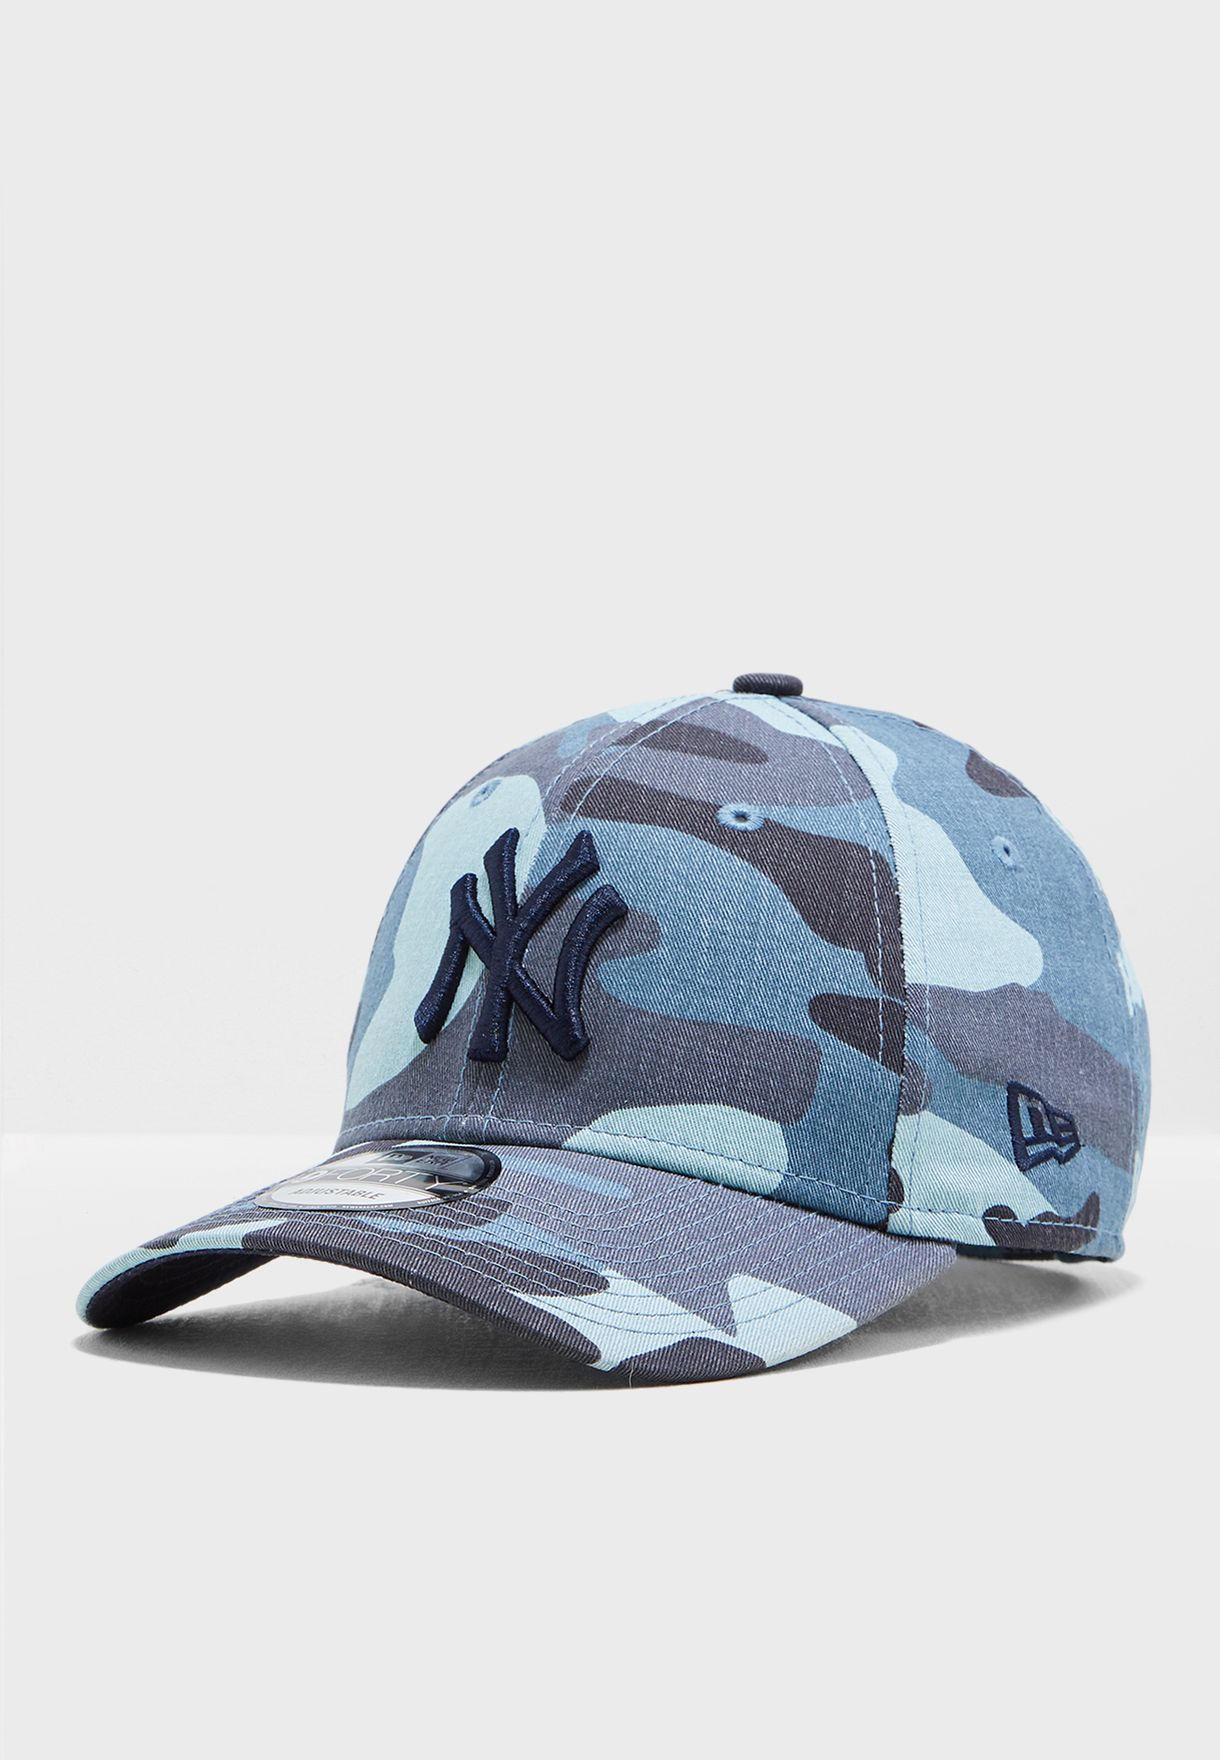 cbe05d7377d24 Shop New Era prints 9Forty New York Yankees Camo Cap 11871650 for ...